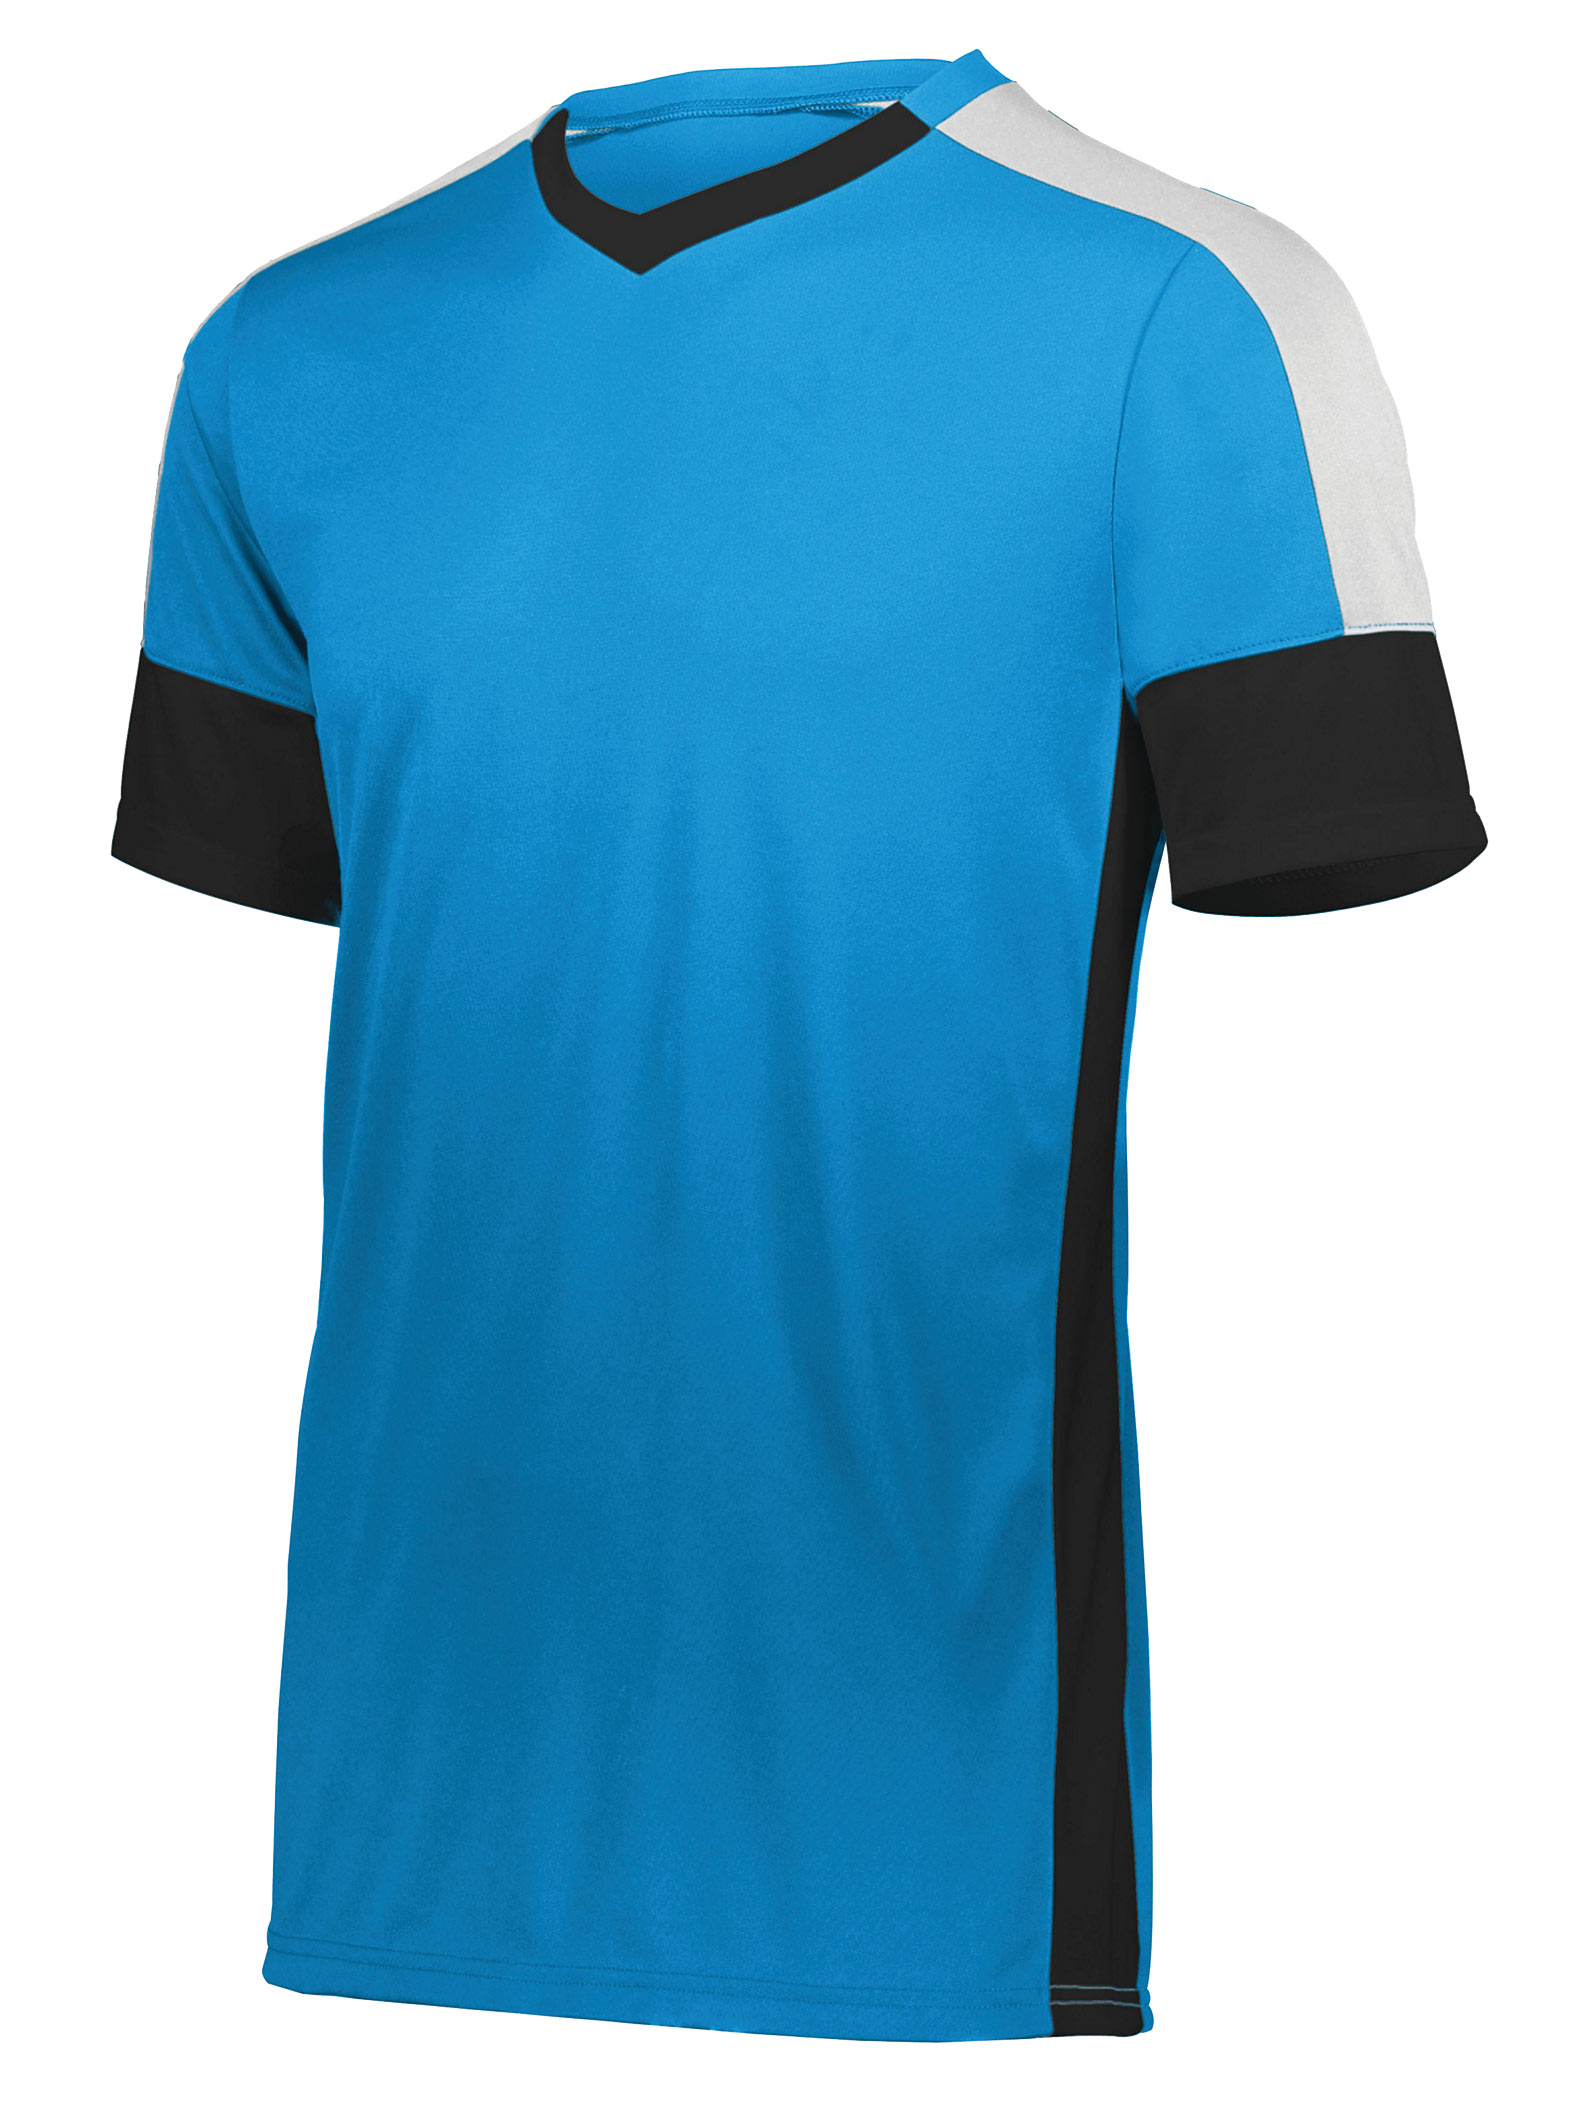 Adult Wembley Soccer Jersey